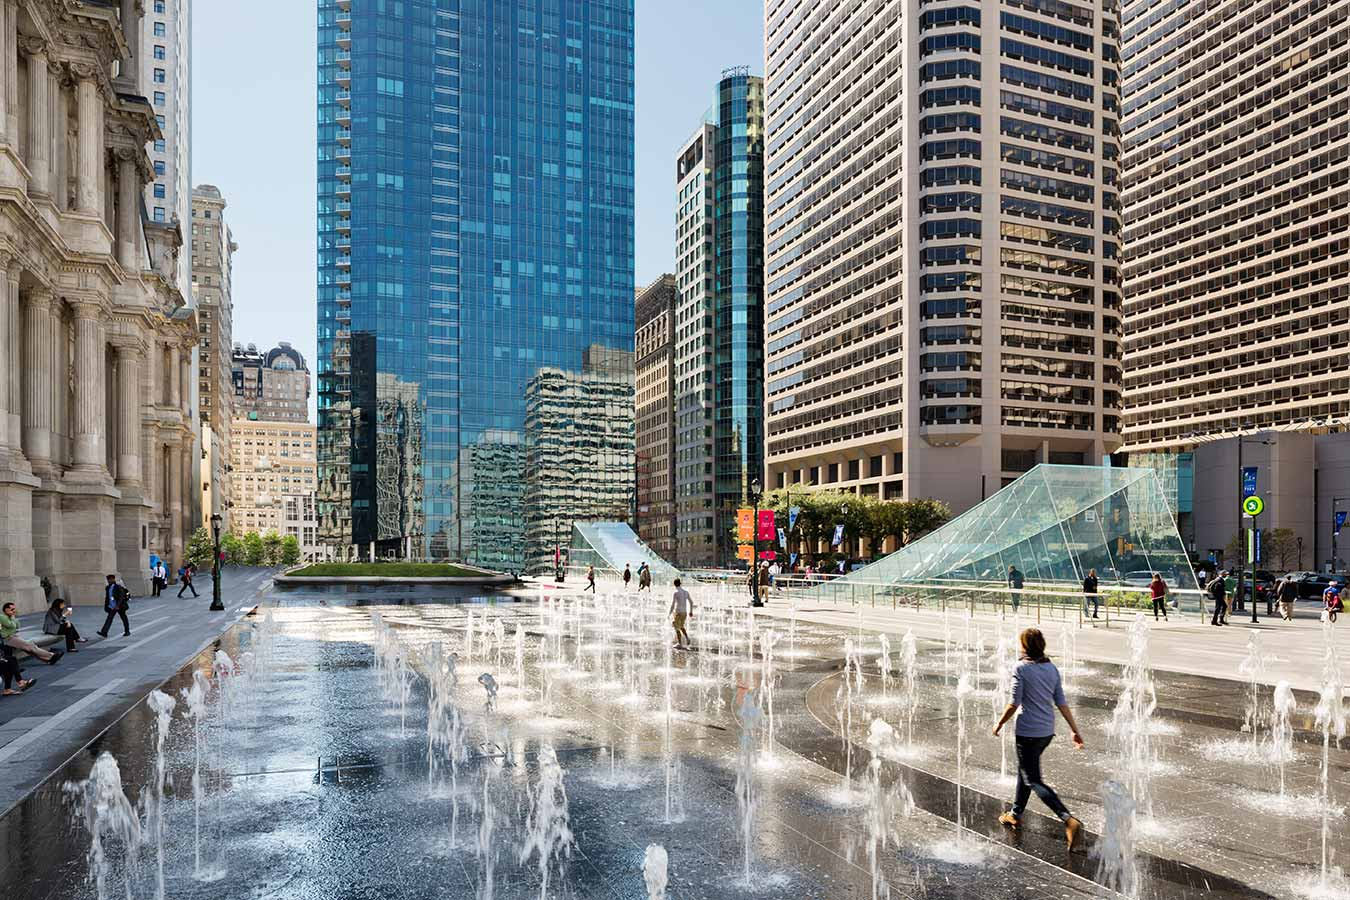 <p>The programmable fountain can be turned partially or completely off, allowing for a broad range of civic and cultural activity, including green markets, concerts, and ice skating in winter. <br><small>© James Ewing Photography</small></p>